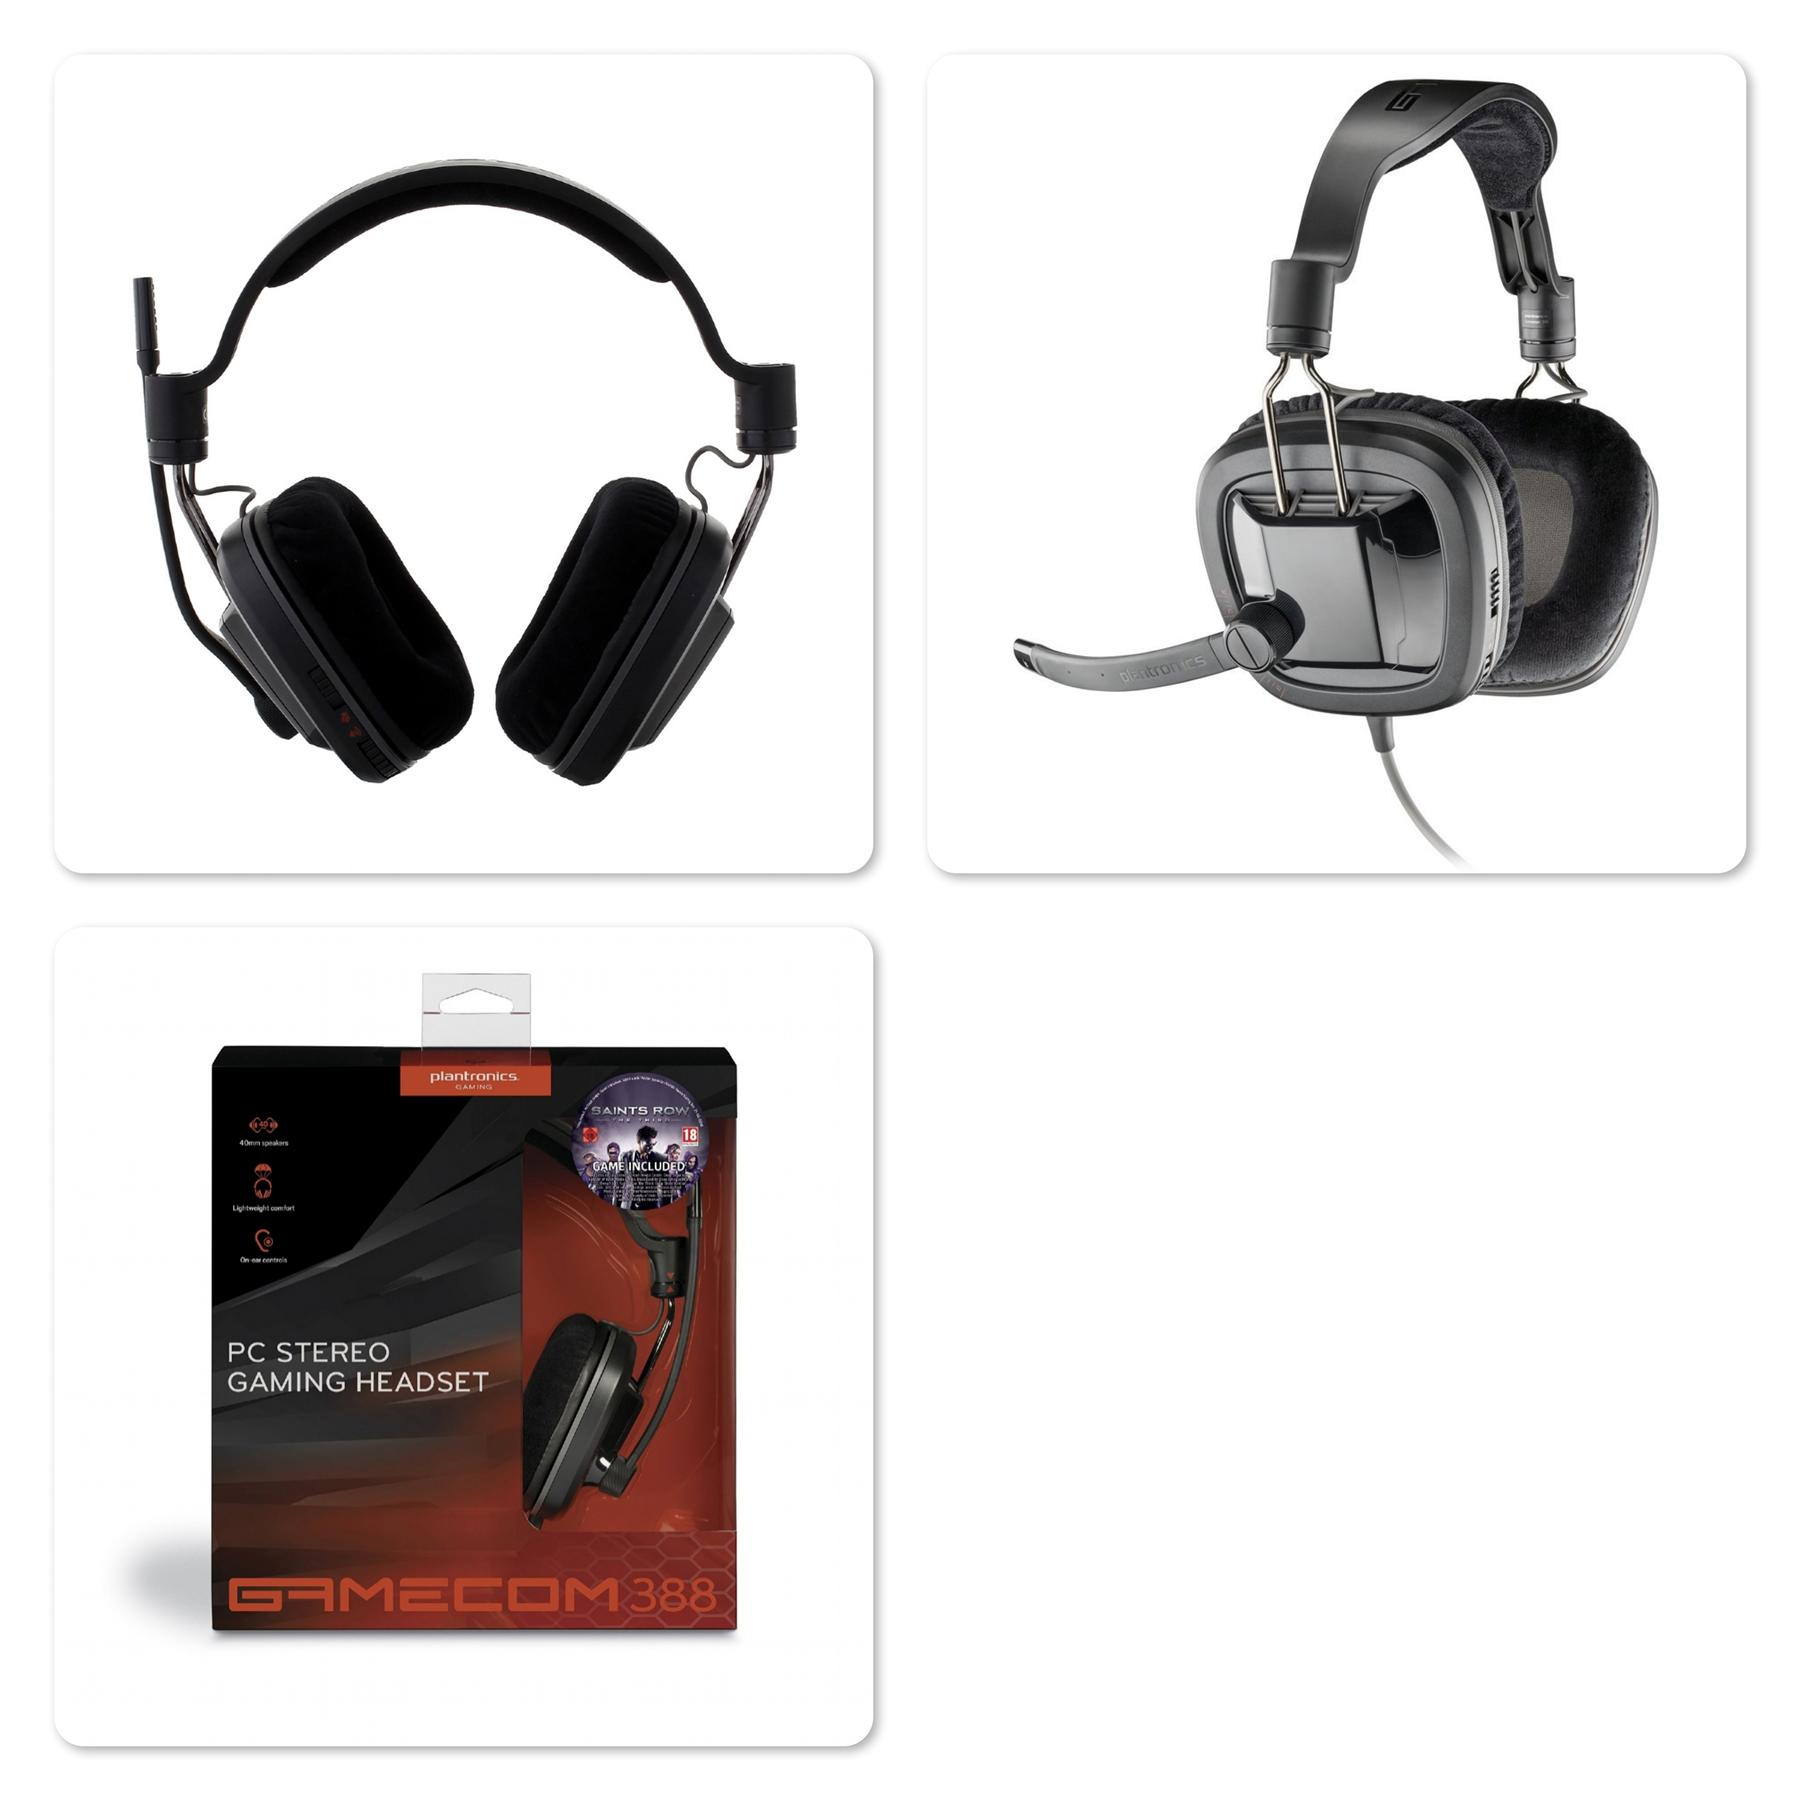 Original Plantronics GameCom 388 Stereo Gaming Headset with Mic